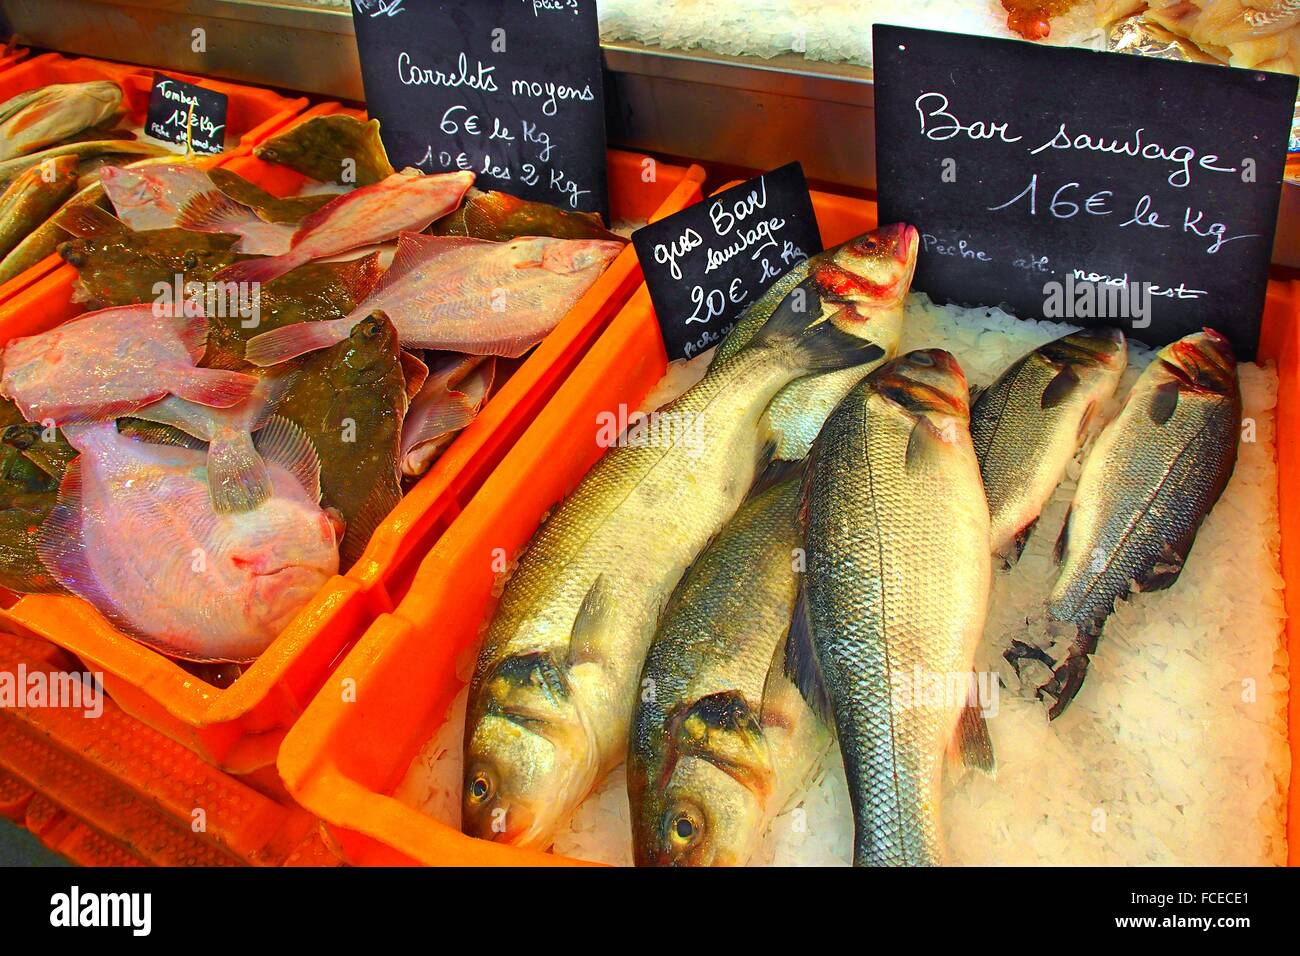 Fish market at Le Treport, Seine-Maritime, Upper Normandy, France - Stock Image